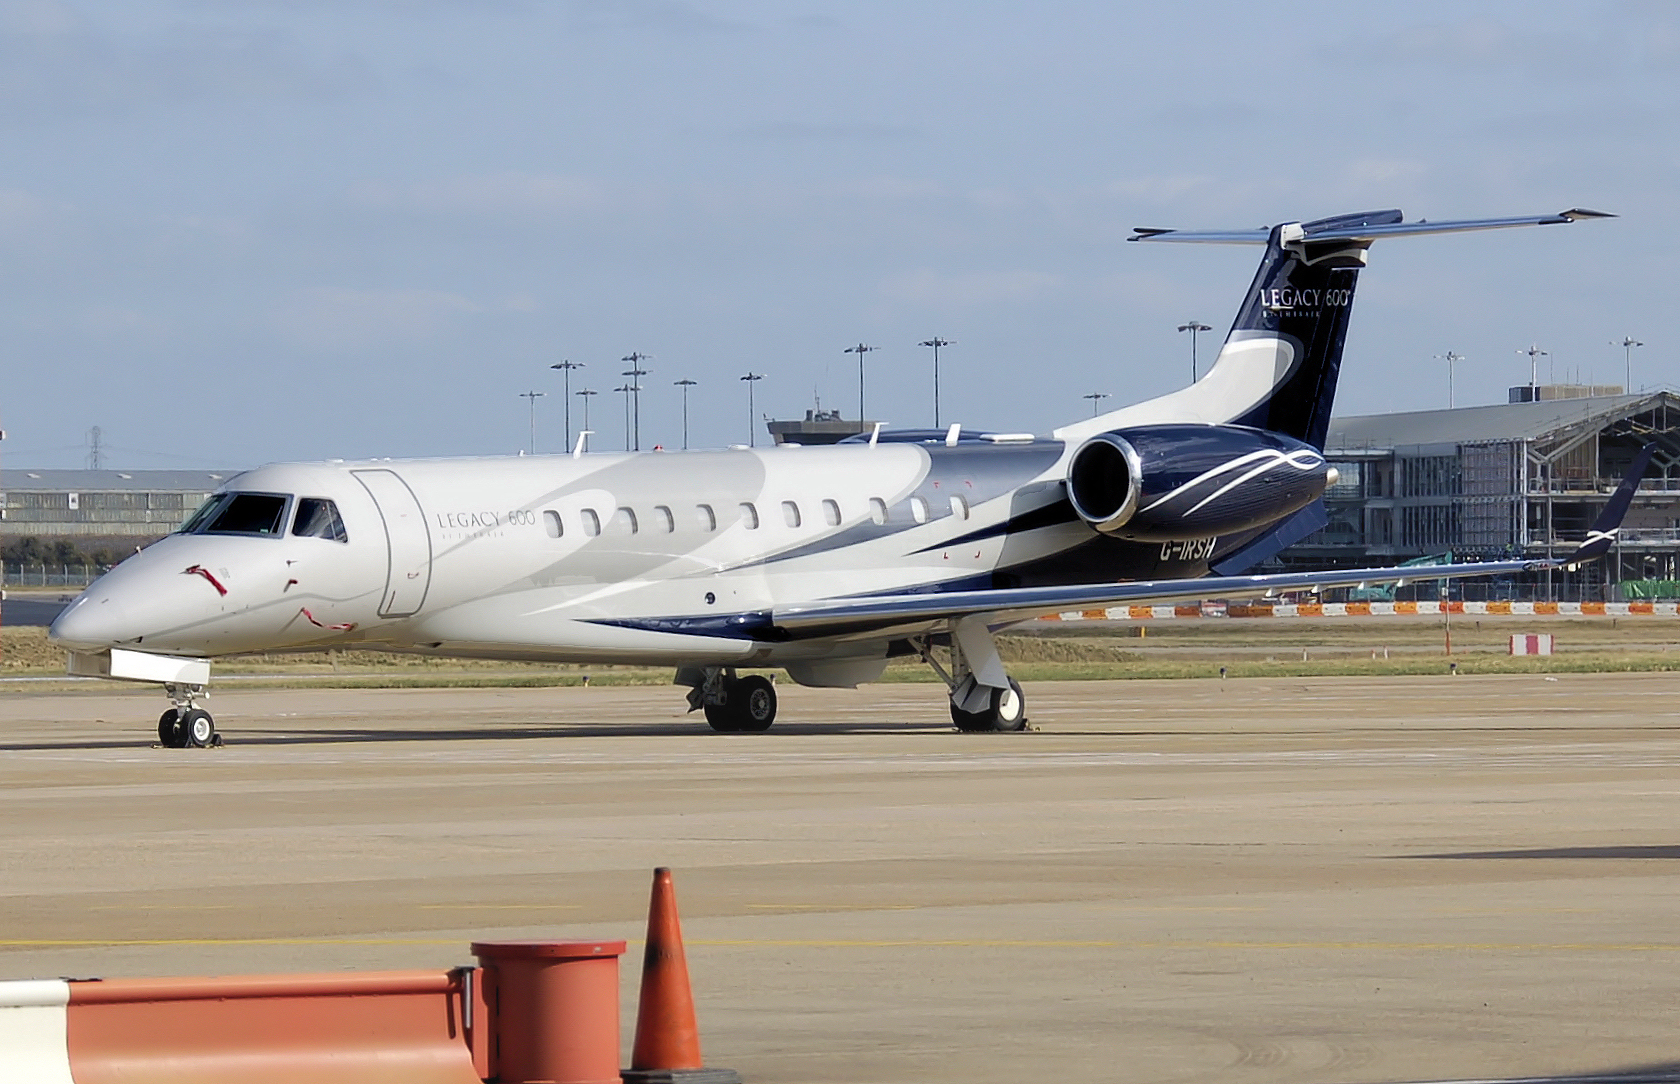 File:Embraer legacy 600 g-irsh arp jpg - Wikimedia Commons